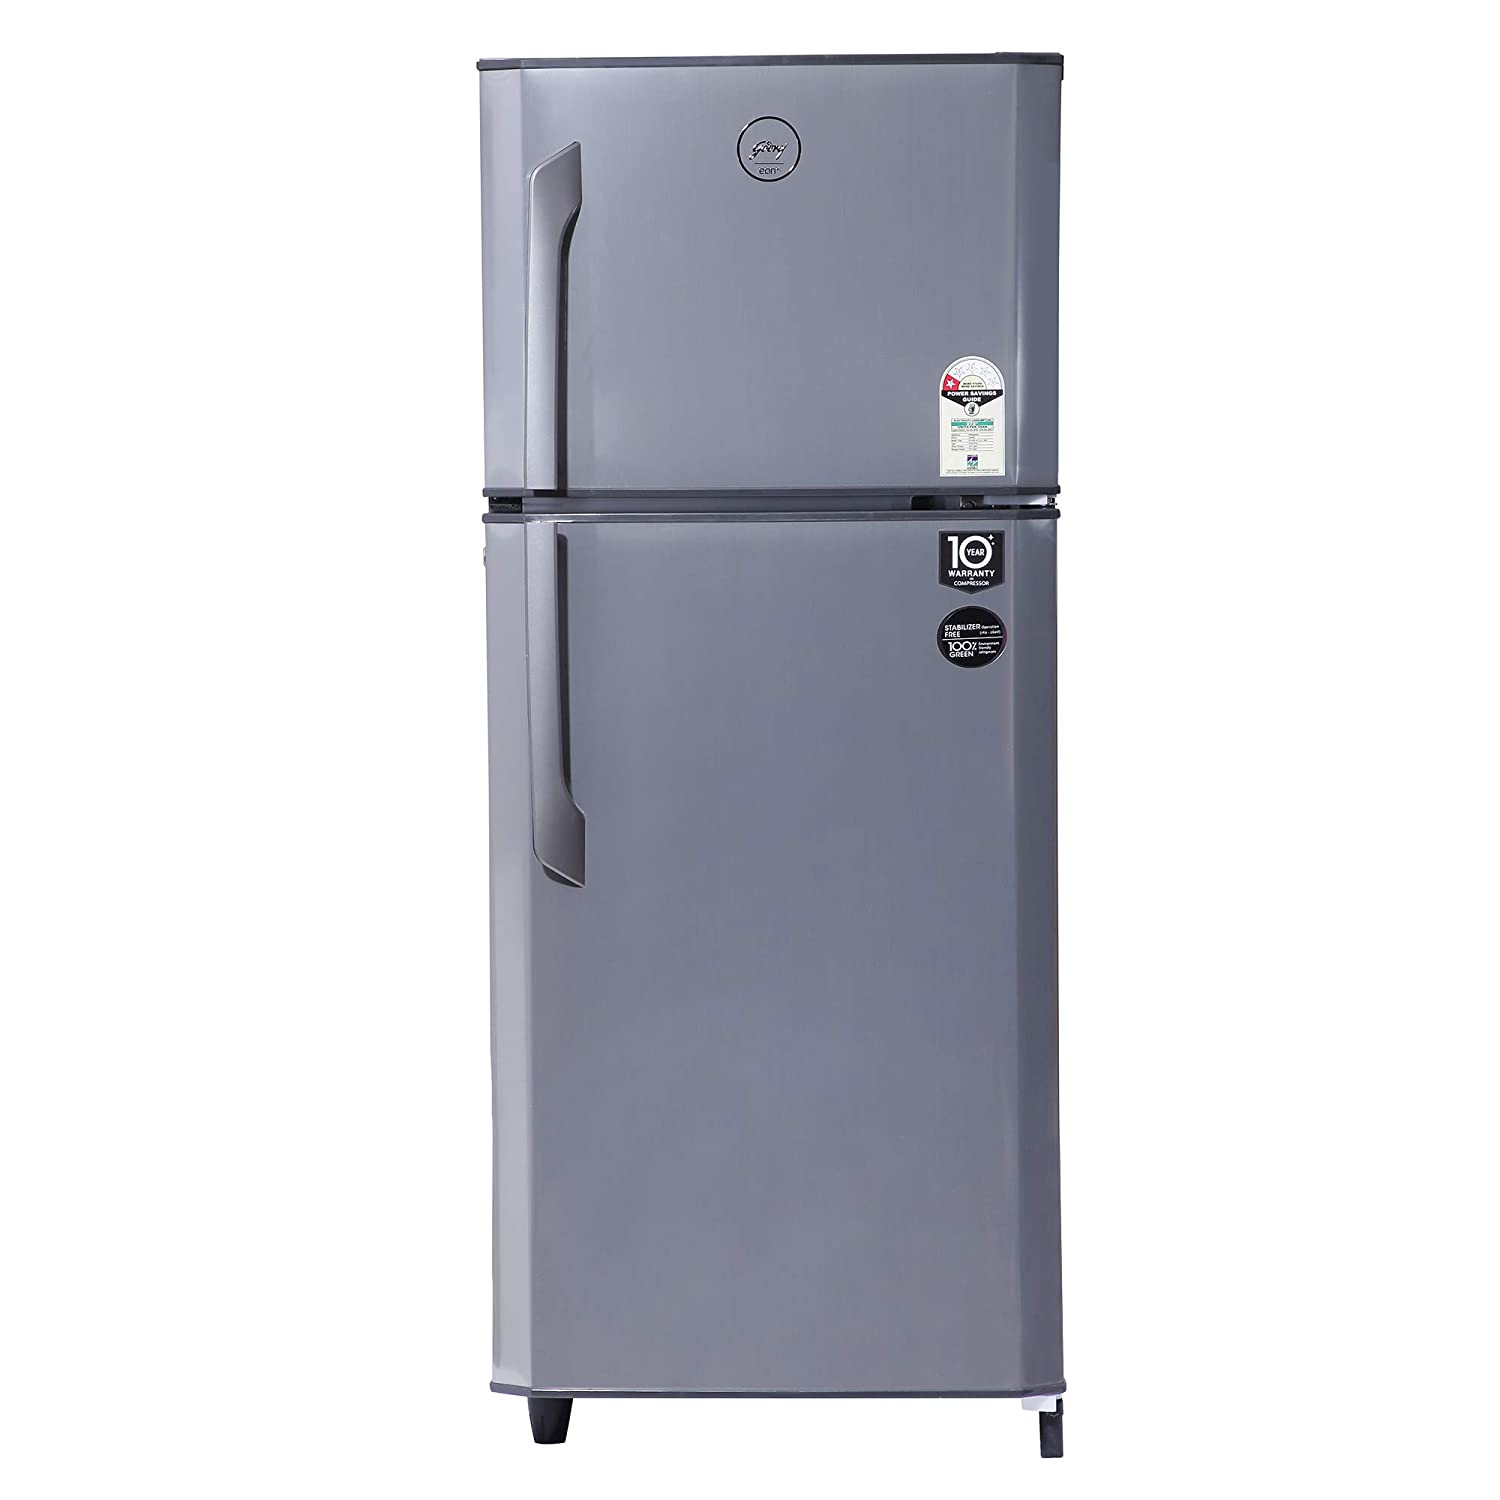 Godrej 231 L 1 Star Frost-Free Double Door Refrigerator (RF EON 245A 15 HF SI ST, Silver Strokes)